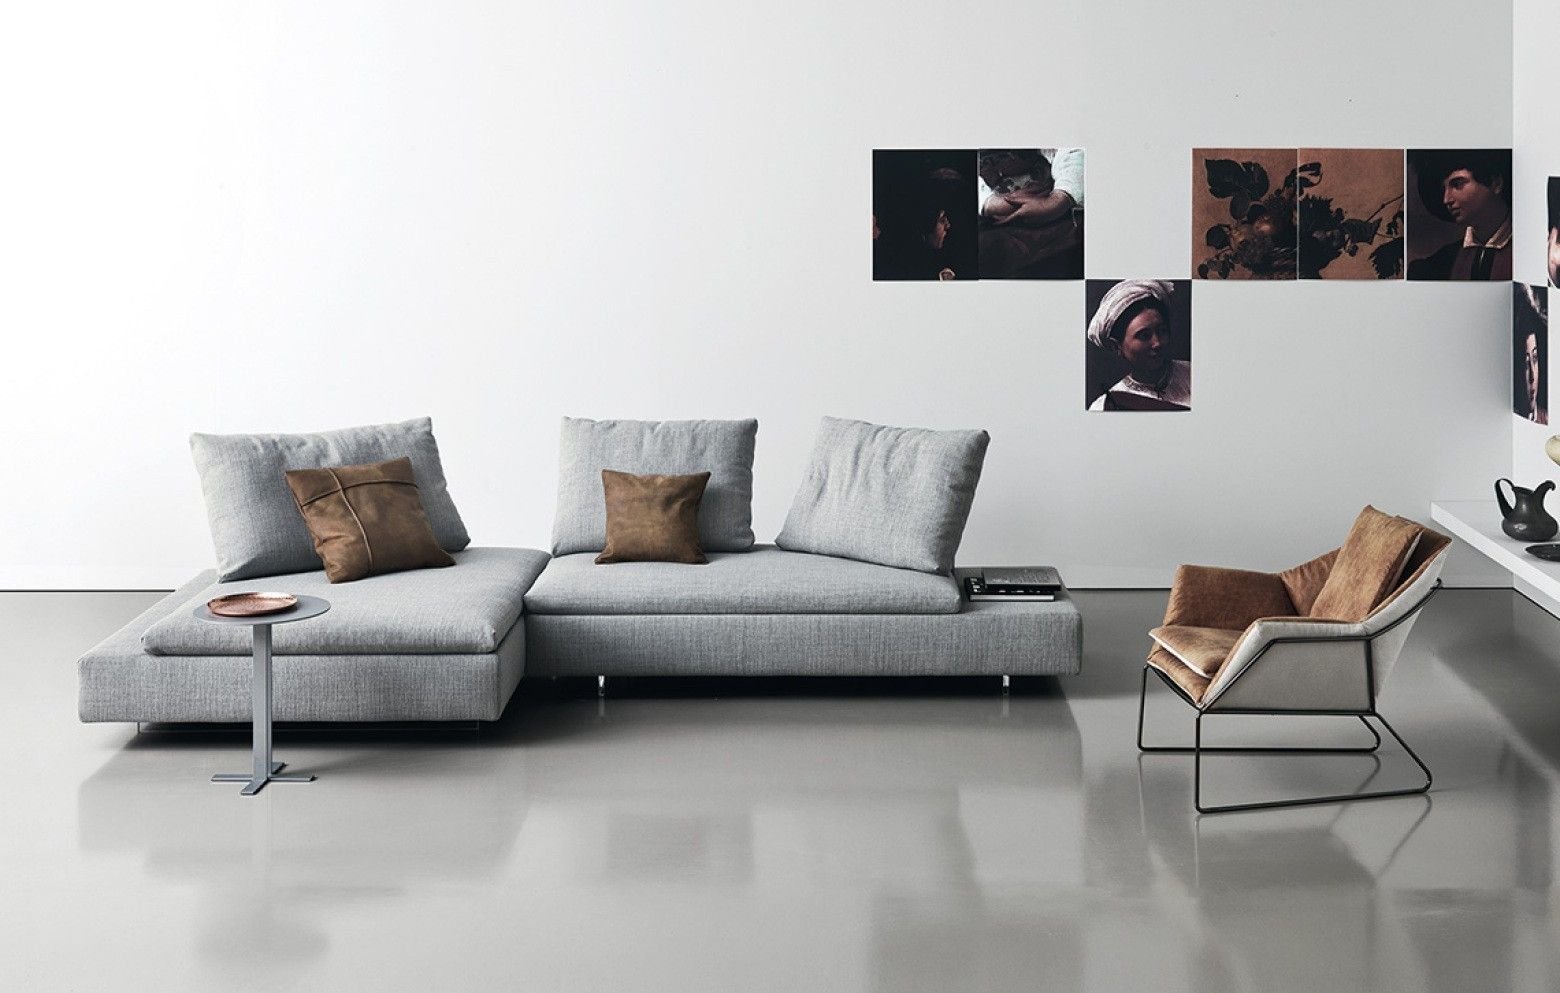 Limes Ecksofa Sofas Online Outlet Whos Perfect